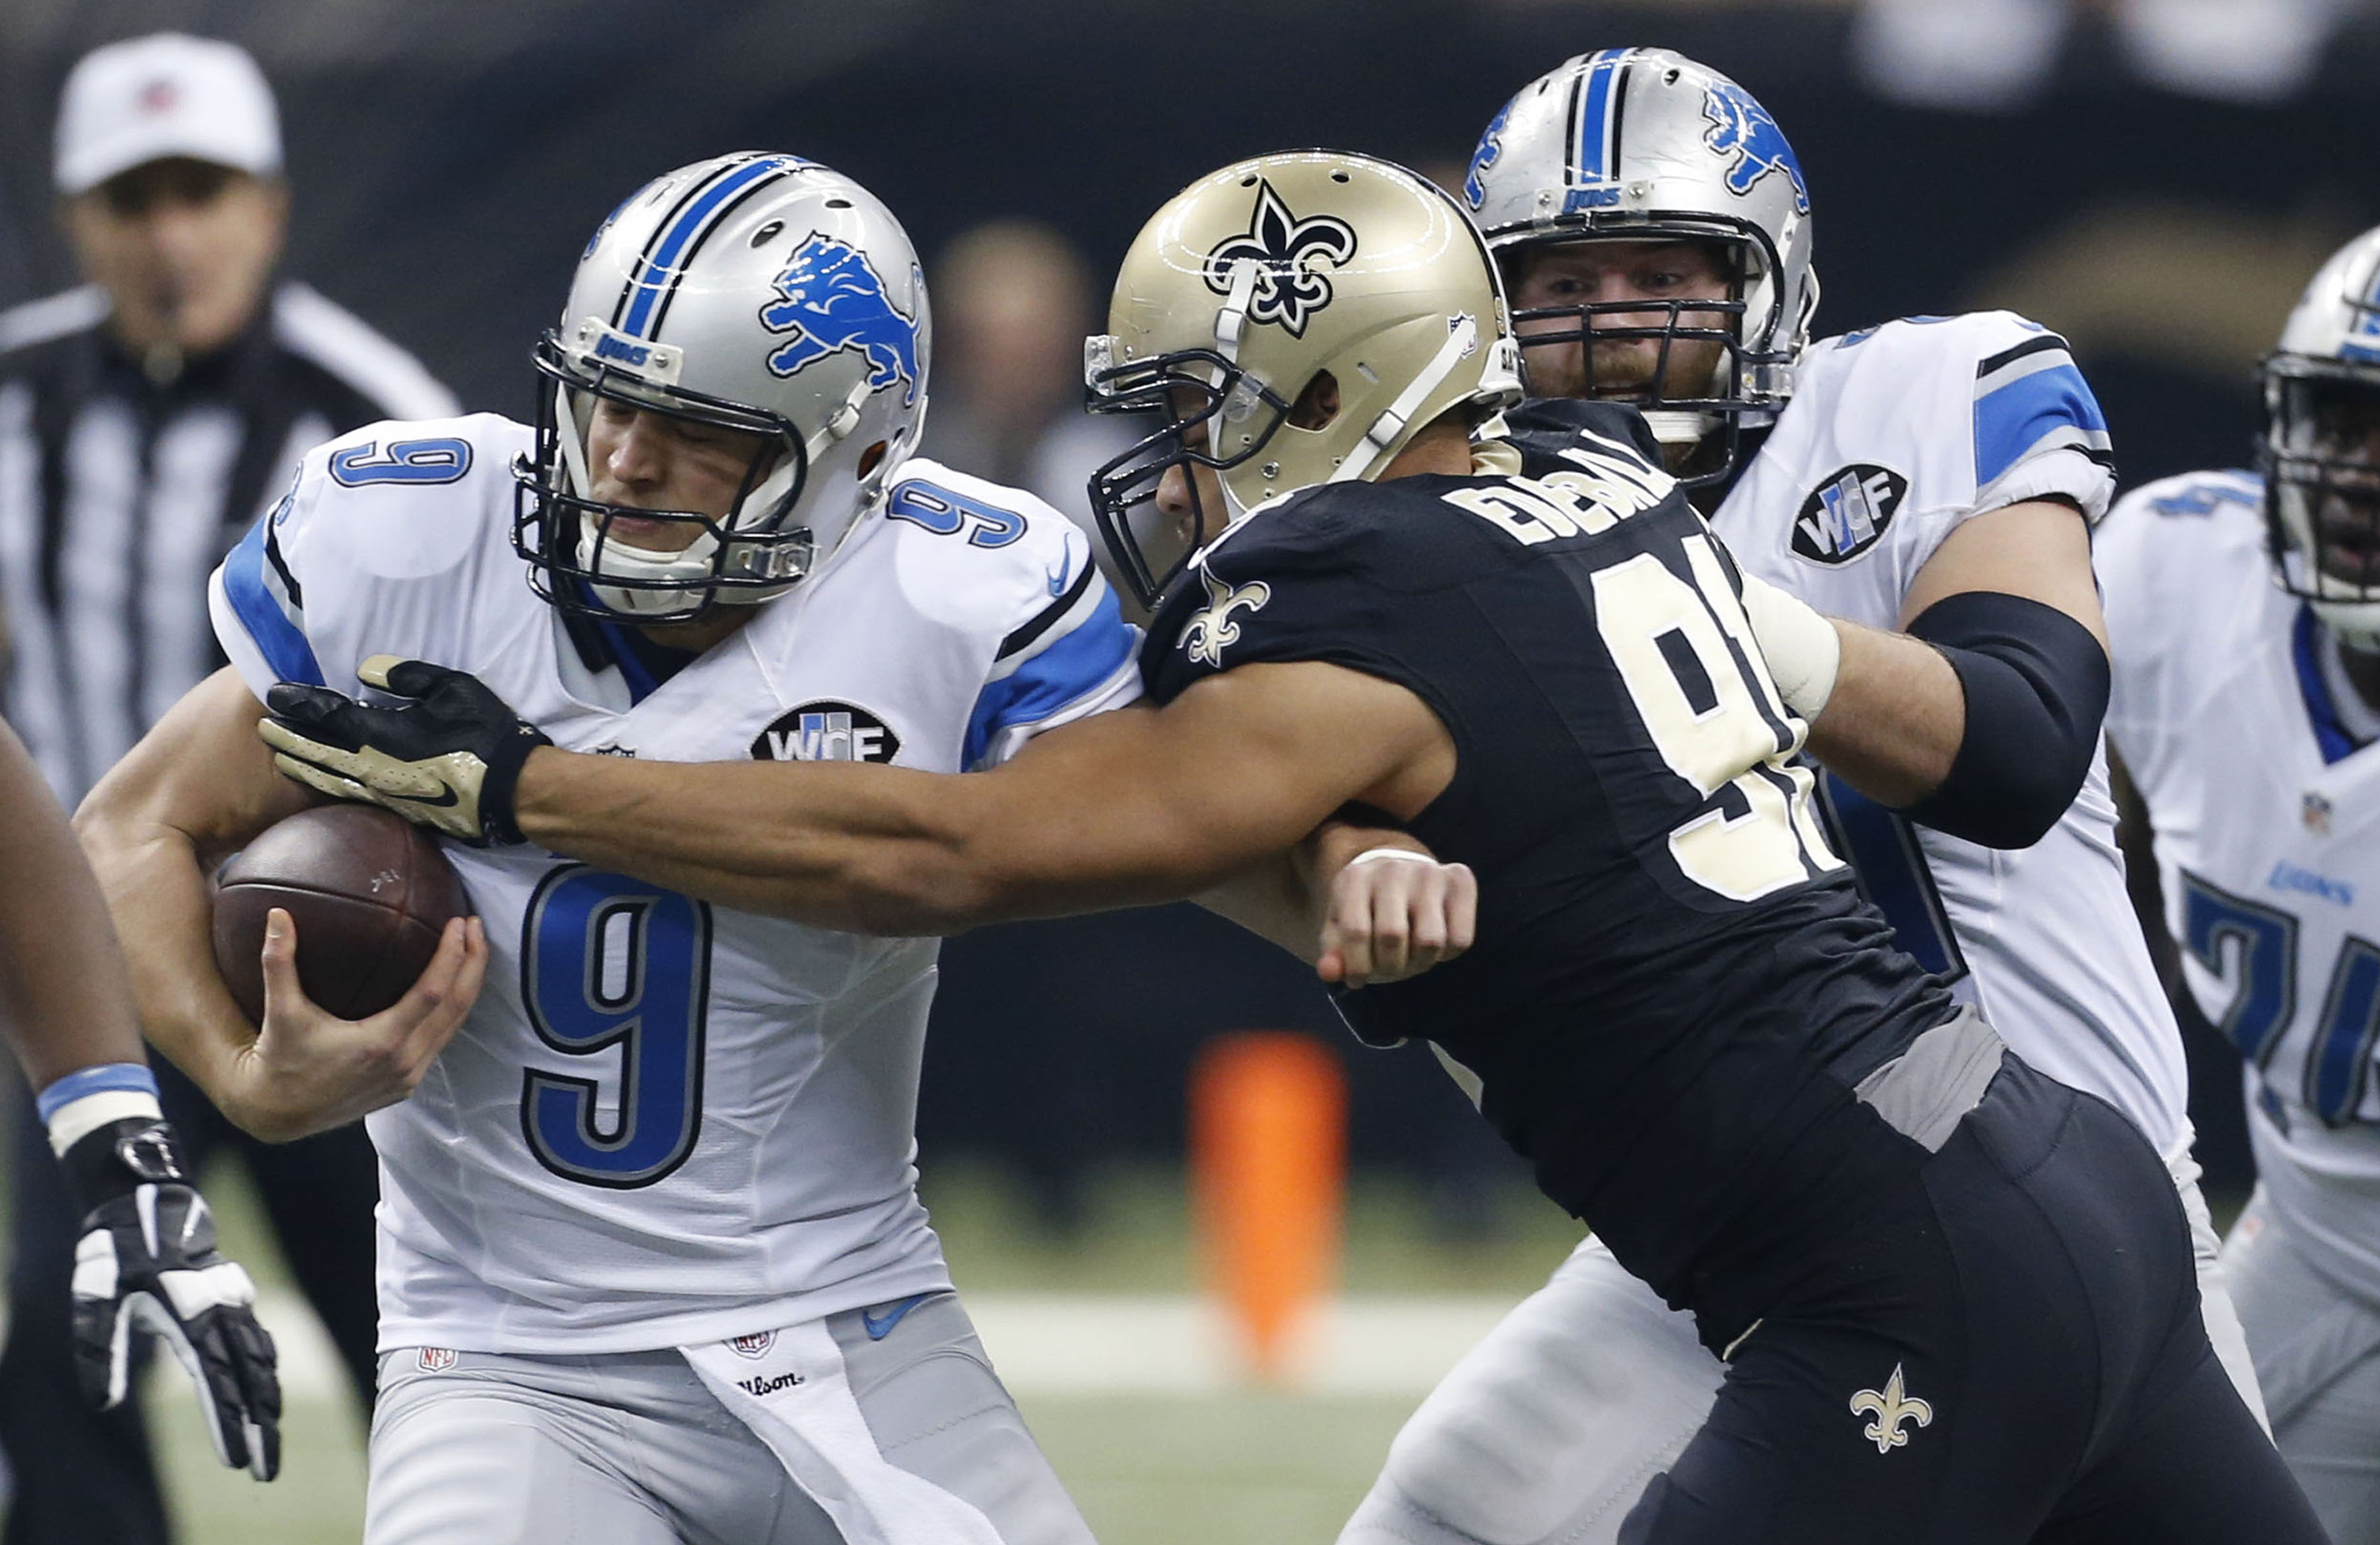 FILE - In this Dec. 21, 2015, file photo, Detroit Lions quarterback Matthew Stafford (9) is sacked by New Orleans Saints outside linebacker Kasim Edebali (91) during the first half of an NFL football game in New Orleans. A decade ago Edebali was a teenage